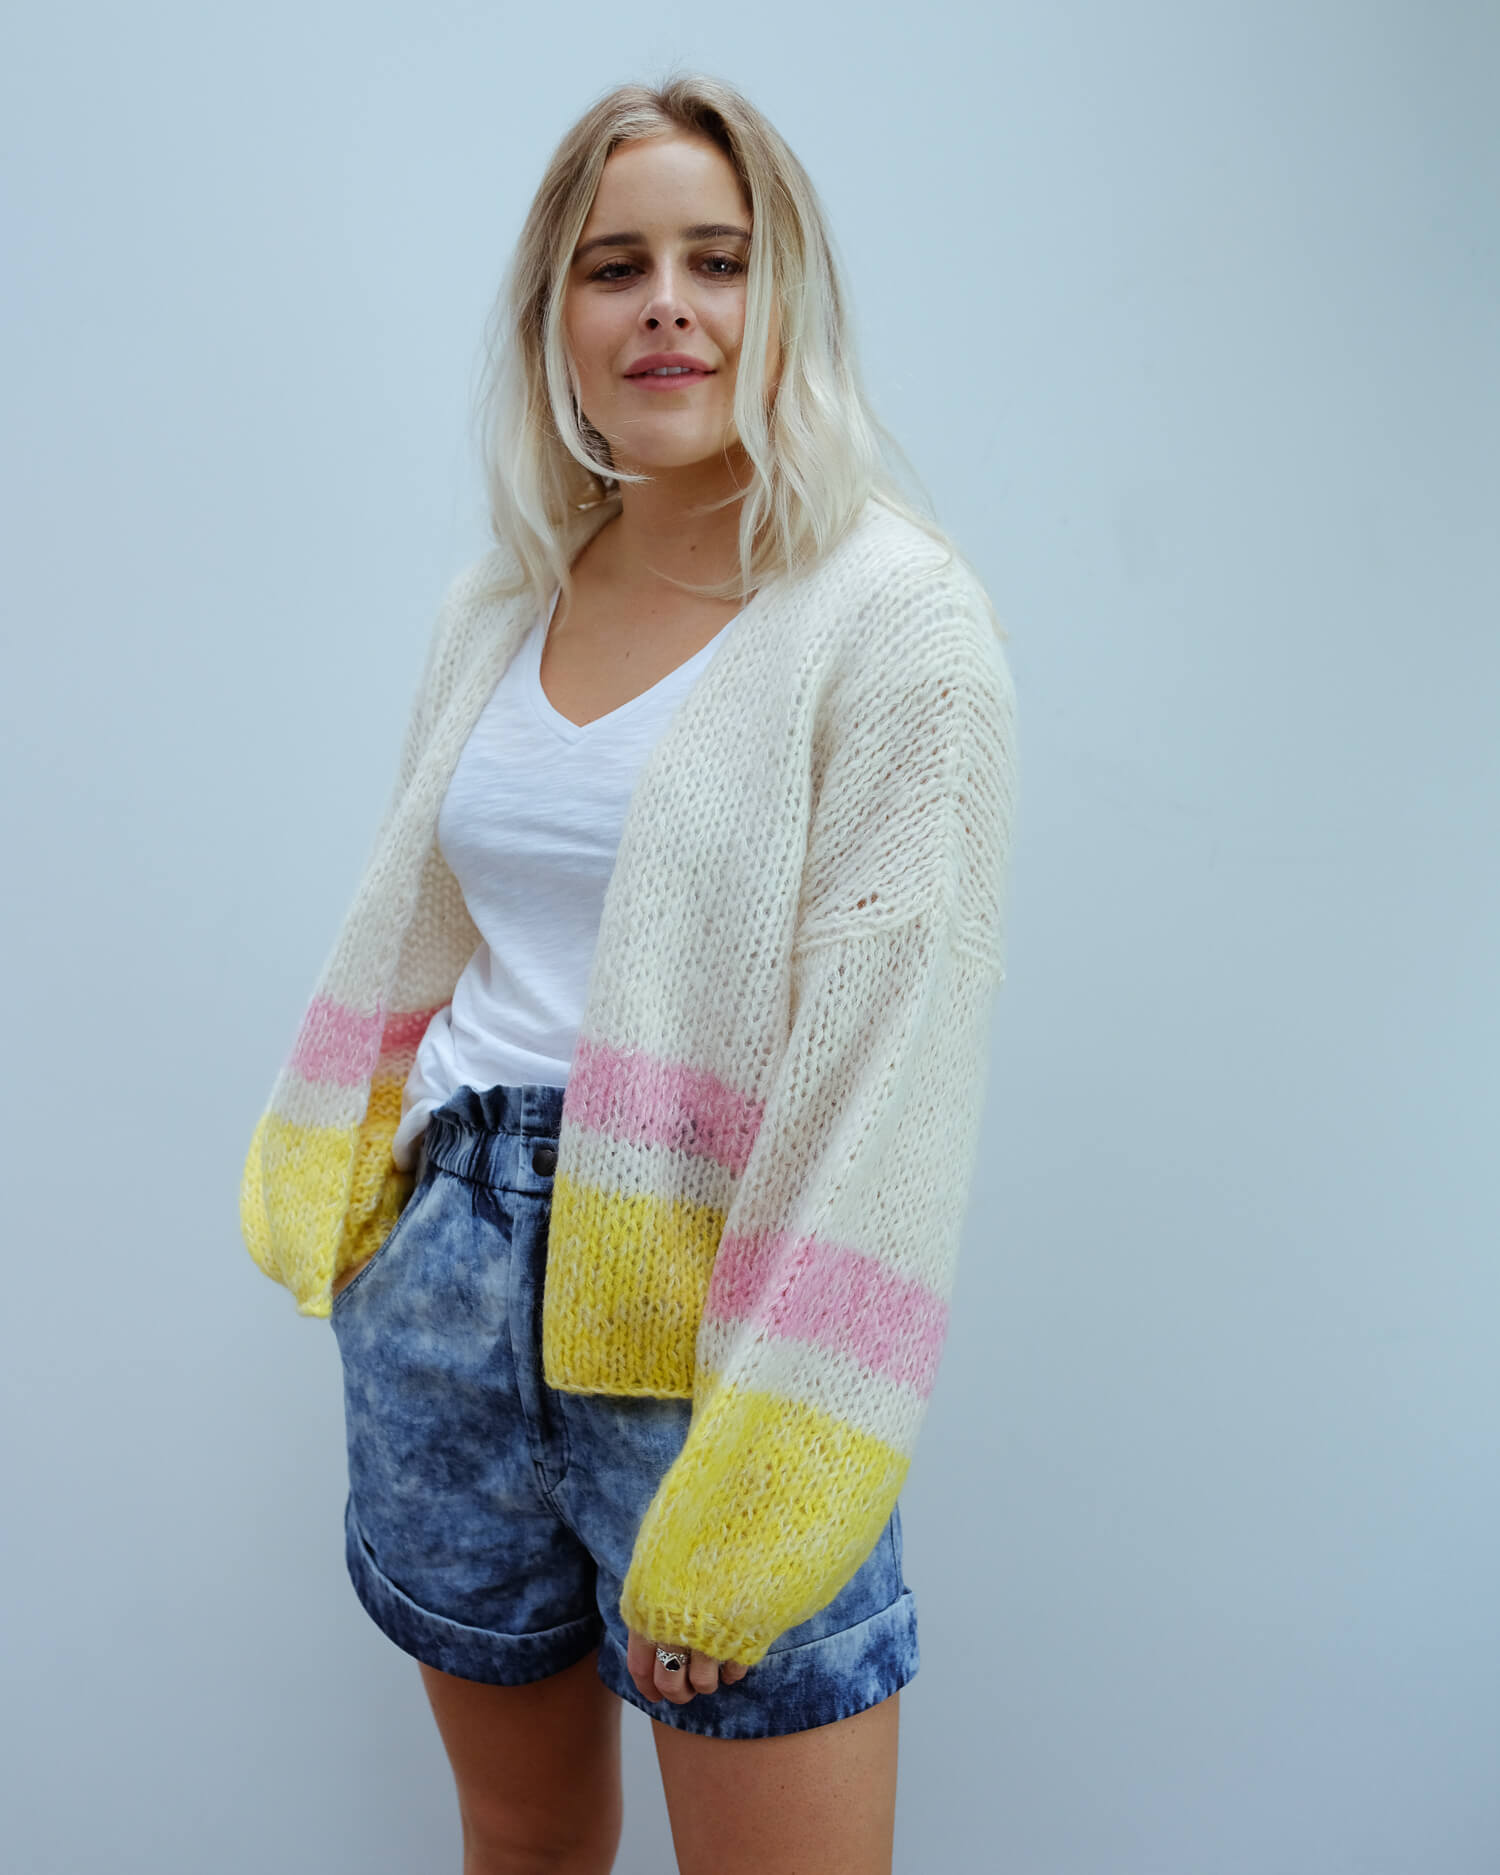 SLF Mellow cardi in yellow stripe